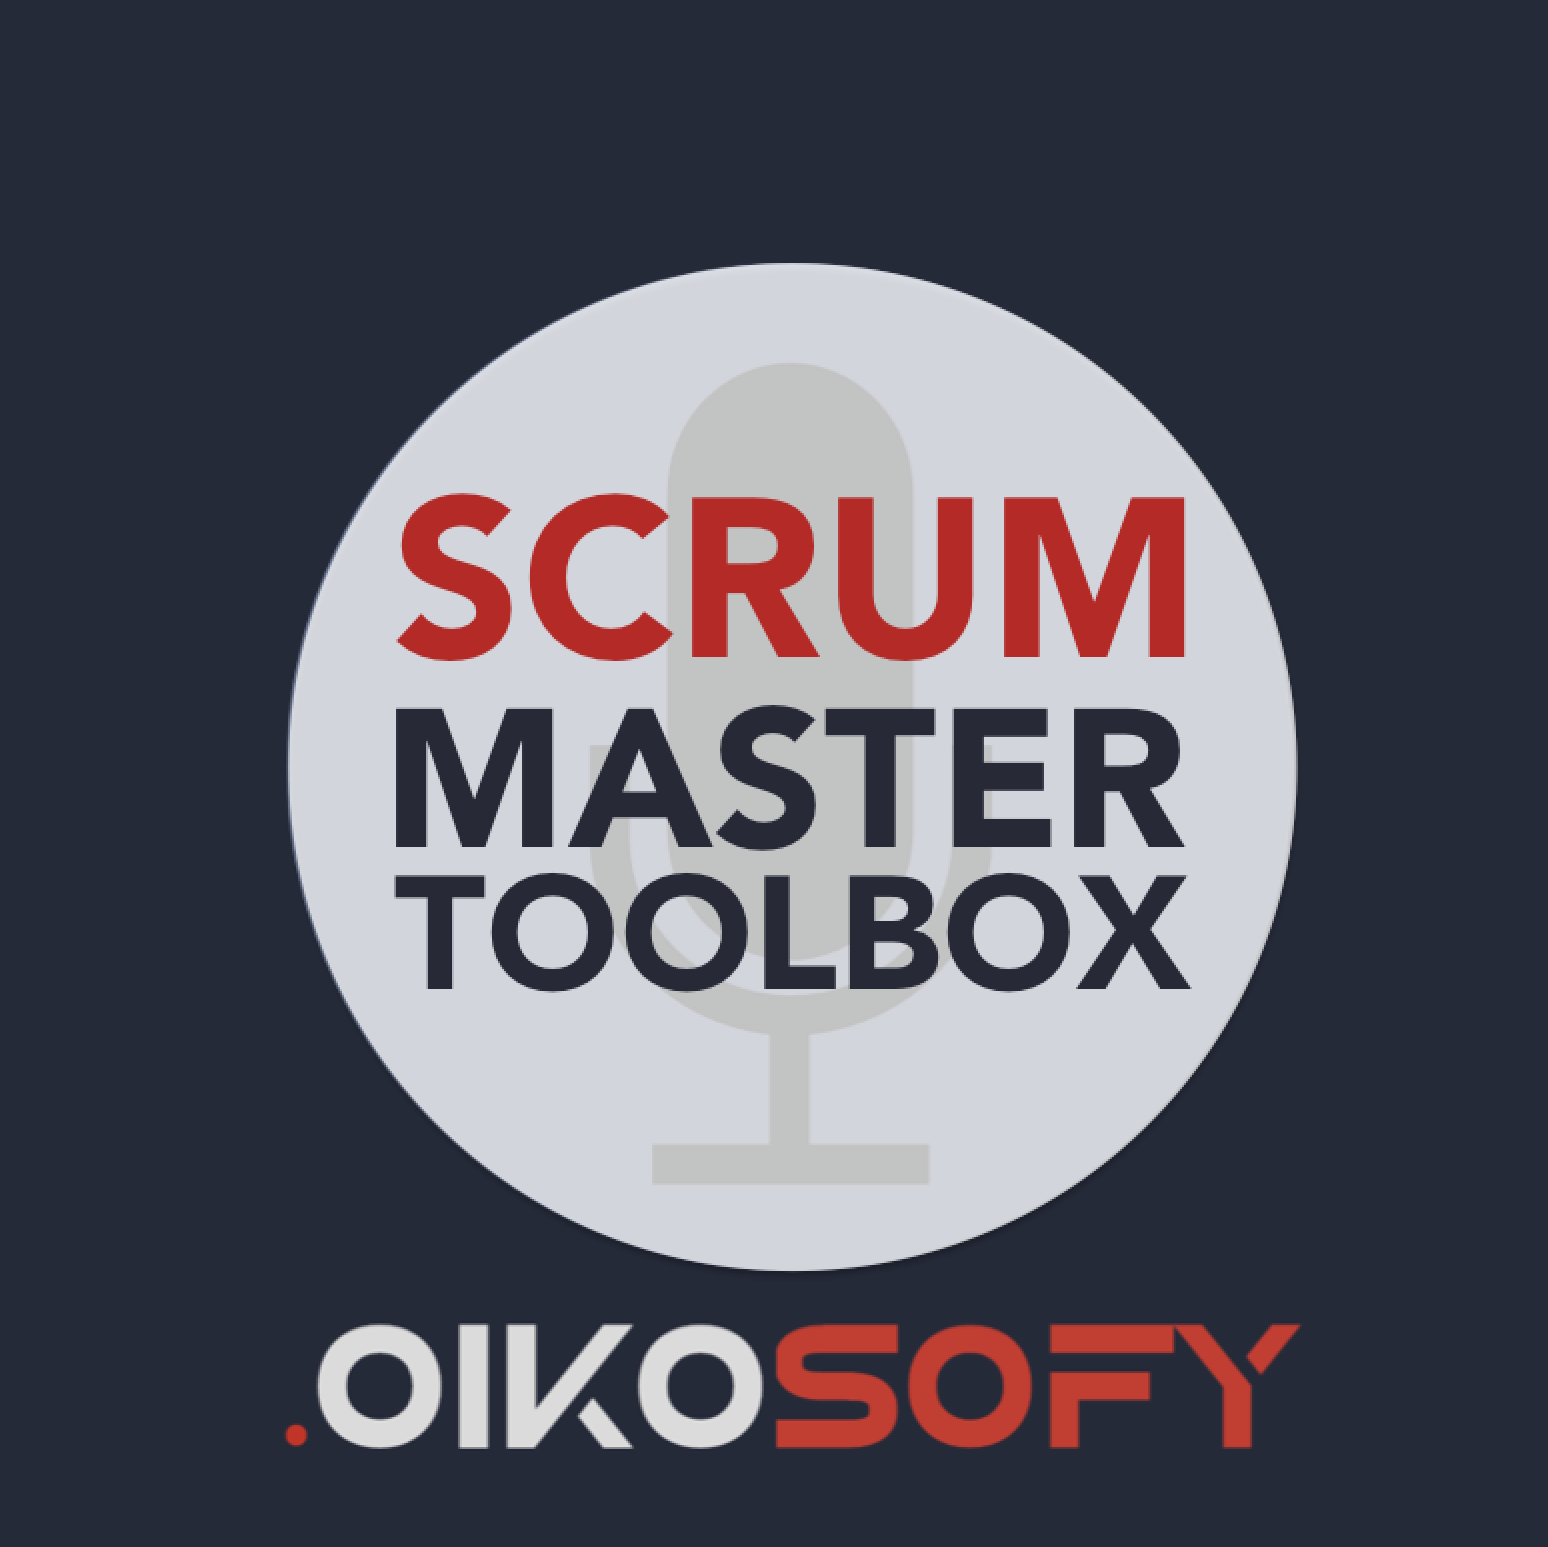 How the project management culture affects the Scrum Master roles | Ivo Peksens